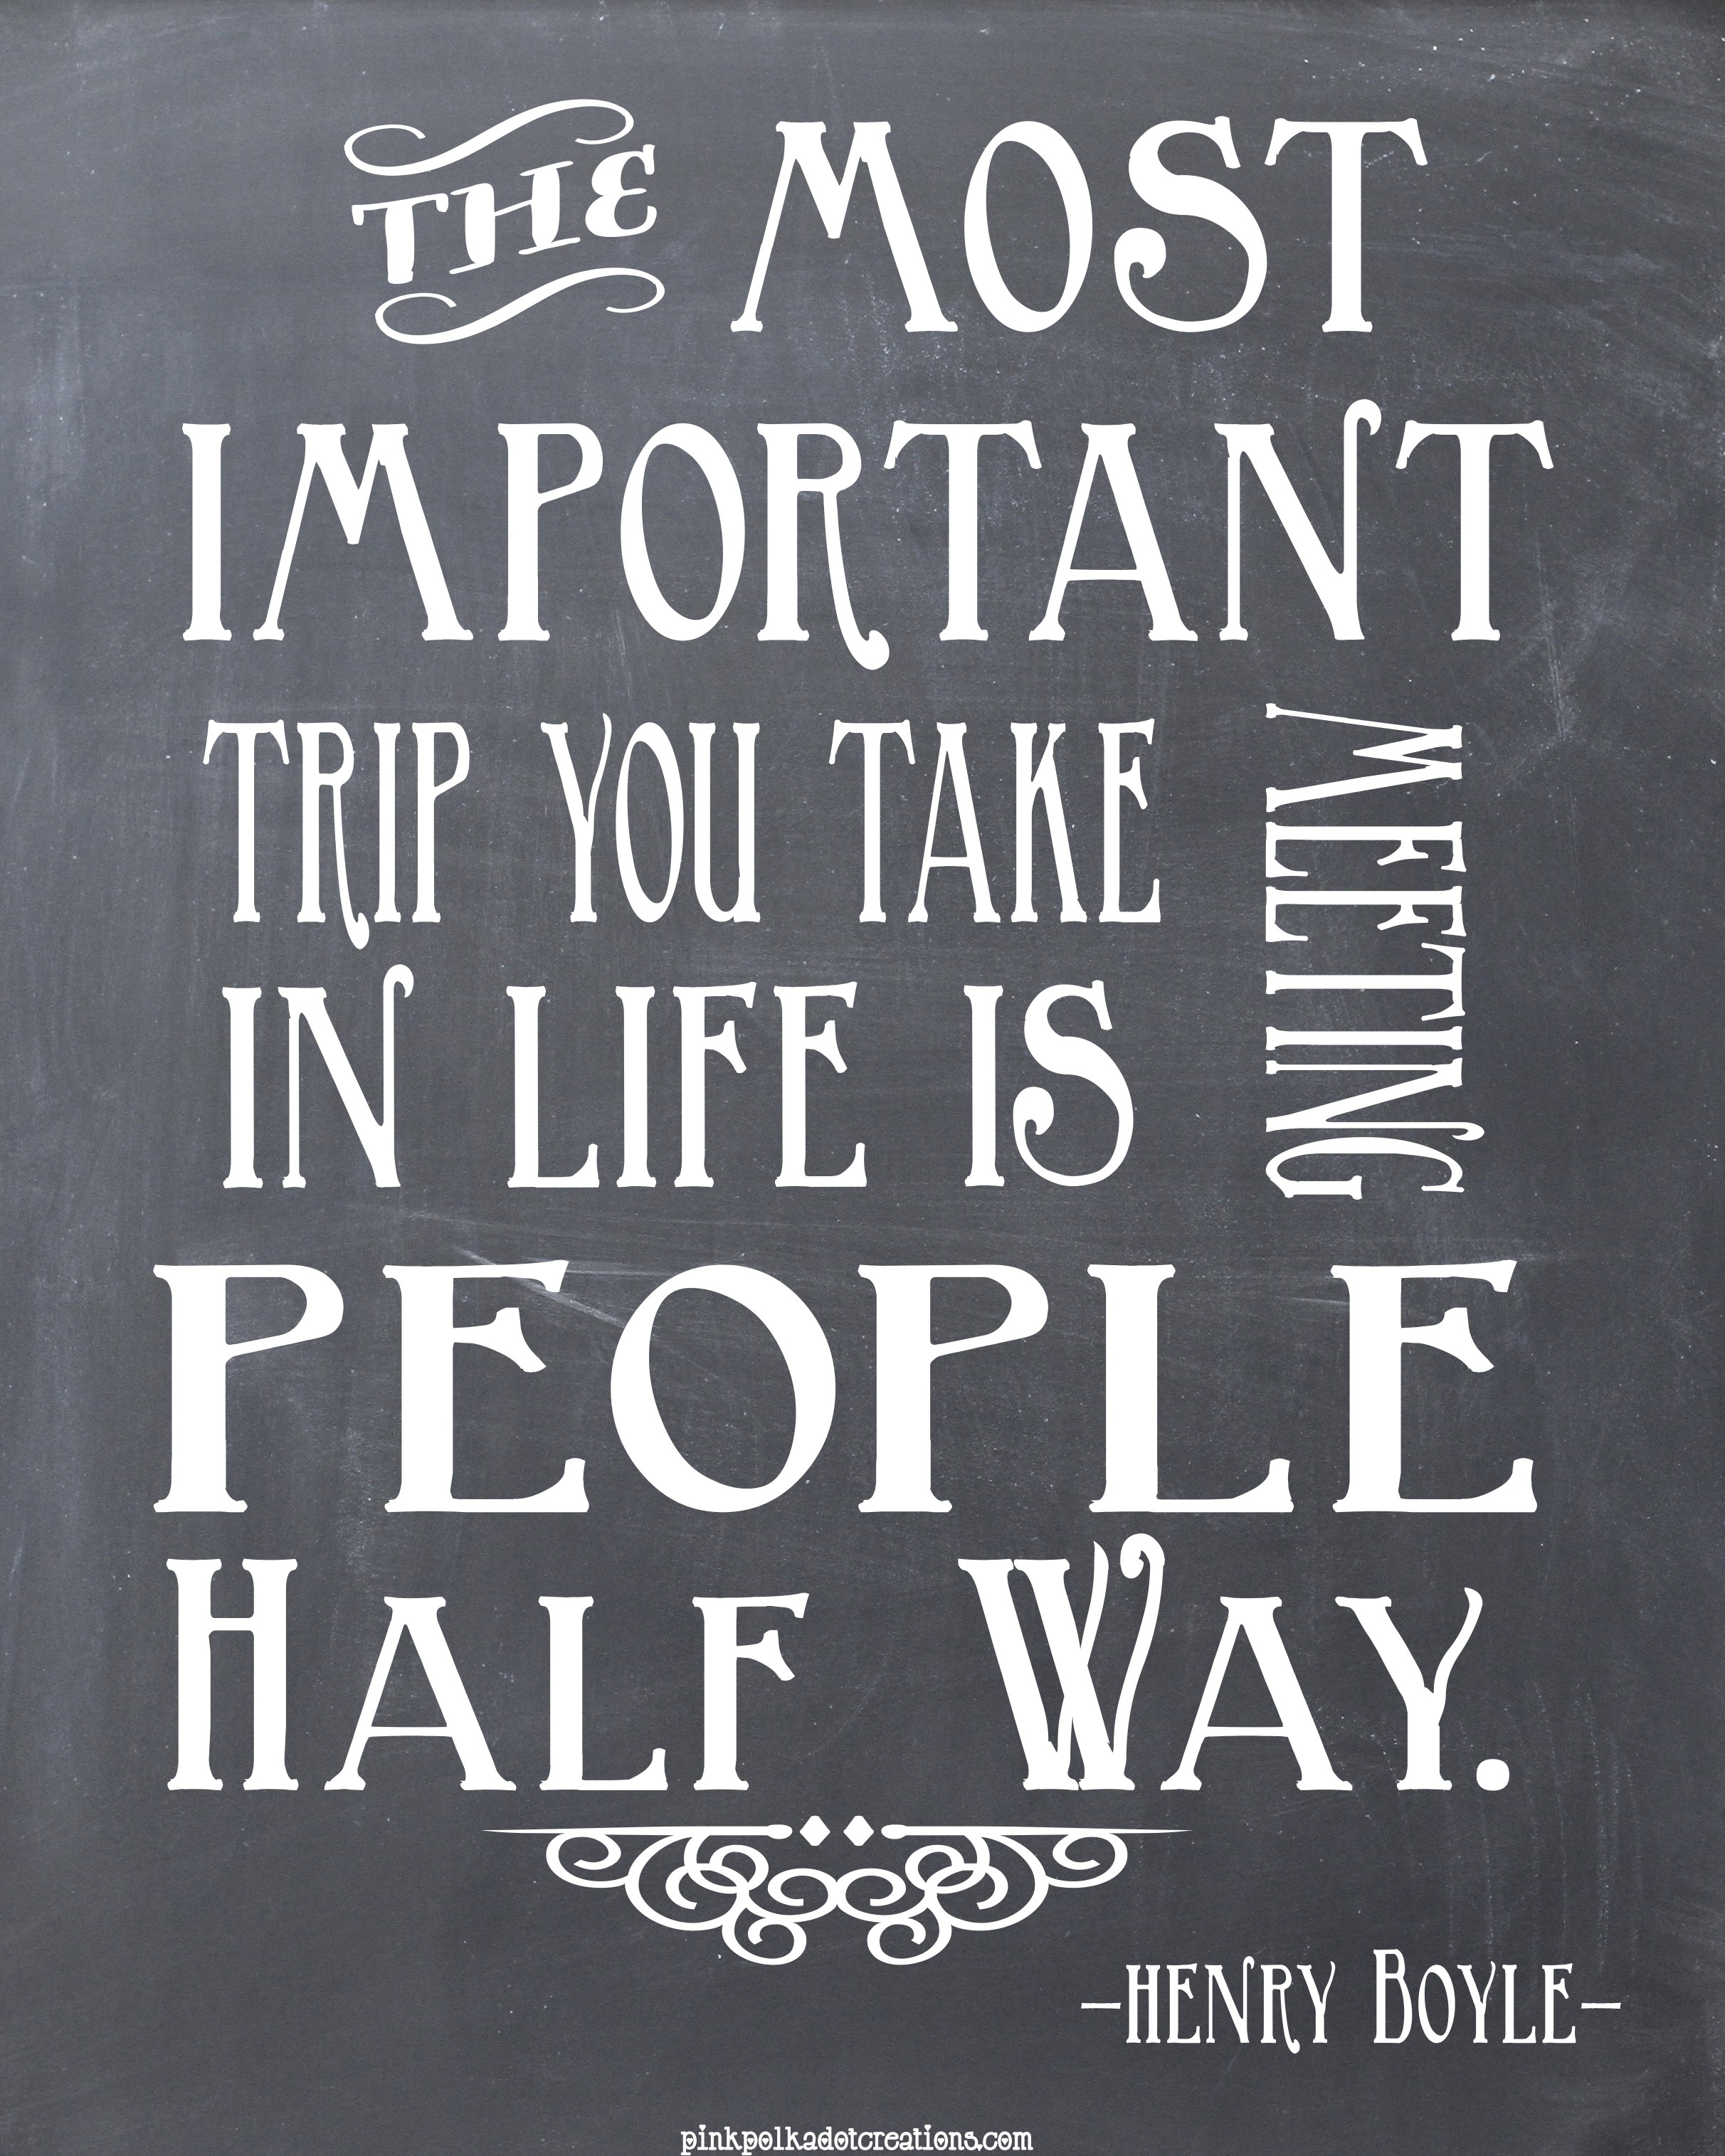 Thursday's Thought-The Most Important Trip...